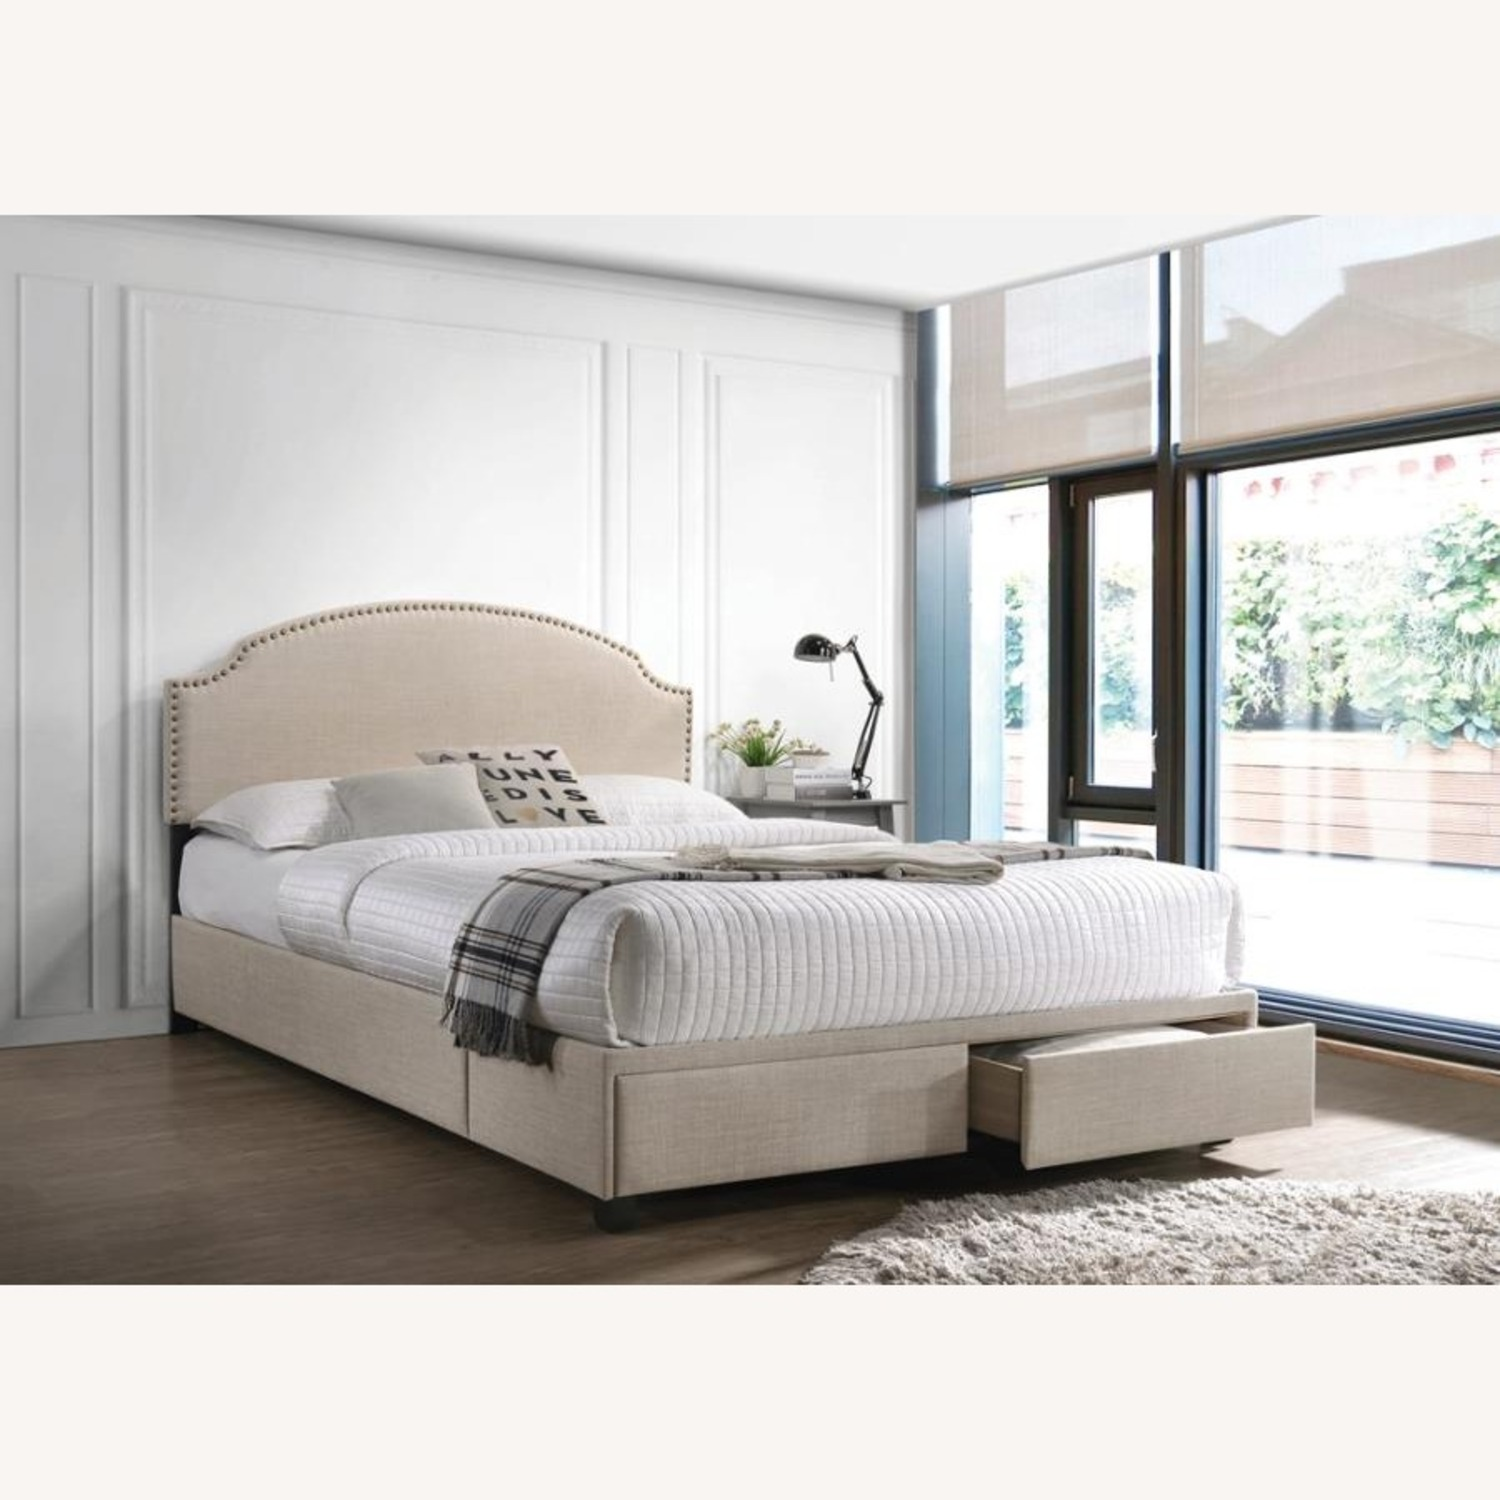 King Bed In Beige Fabric W/ 2 Storage Drawers - image-2